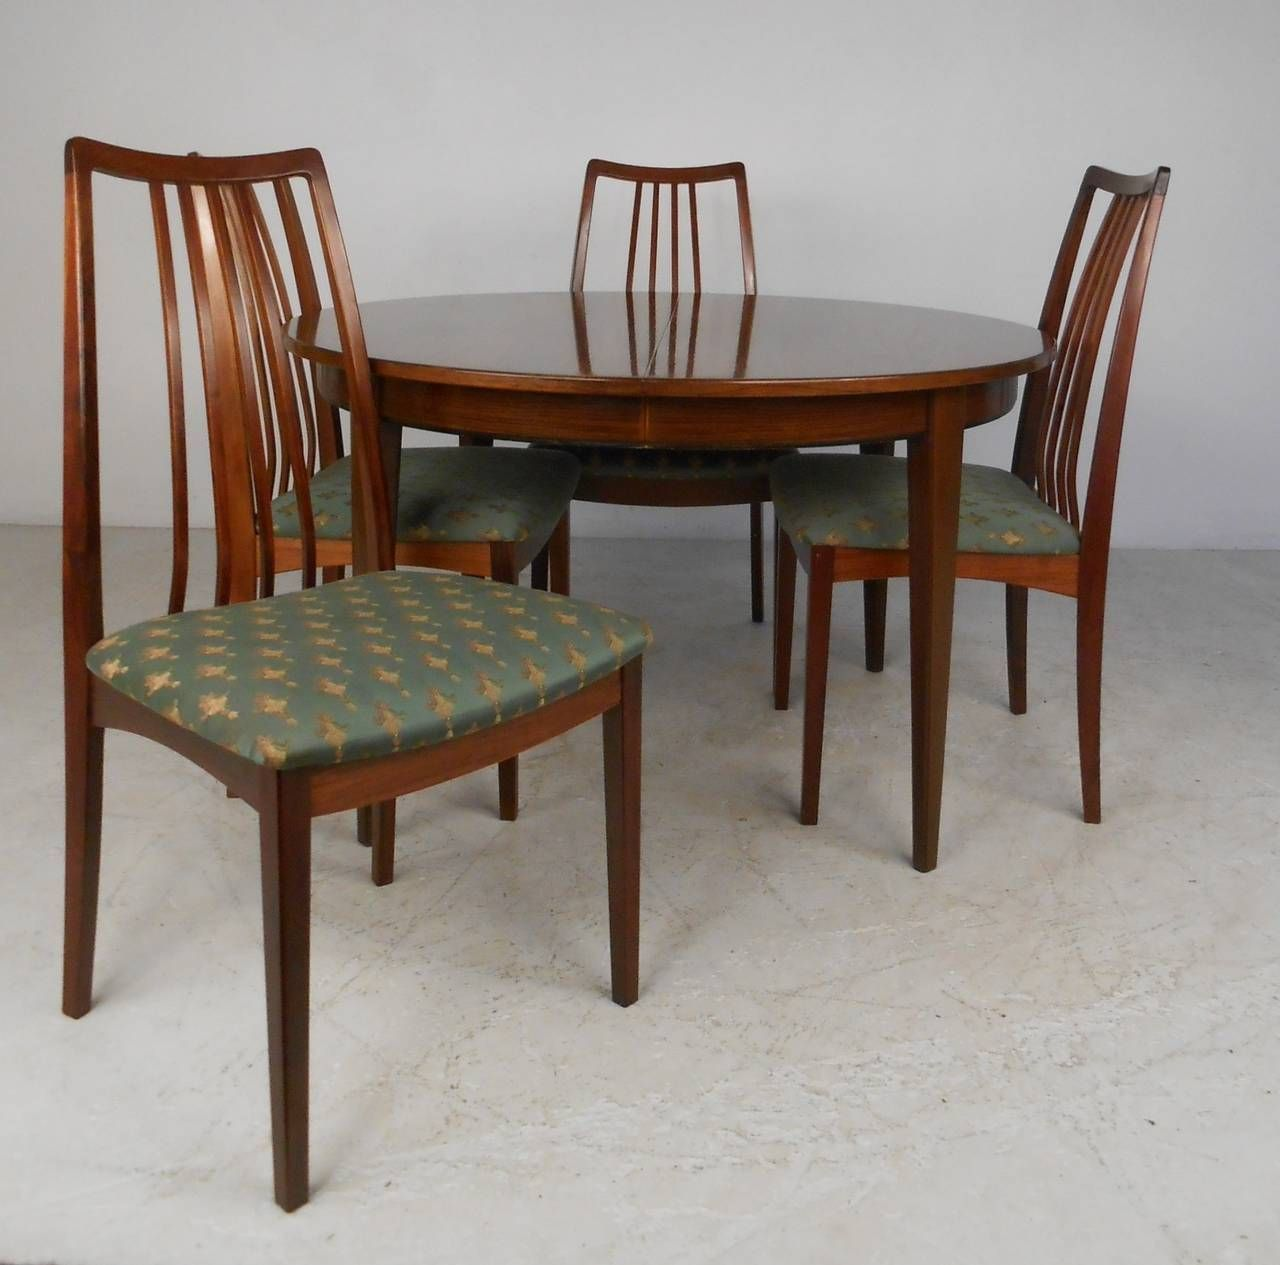 Antique wood dining tables danish rosewood omann jun dining table and chairs  dining room sets